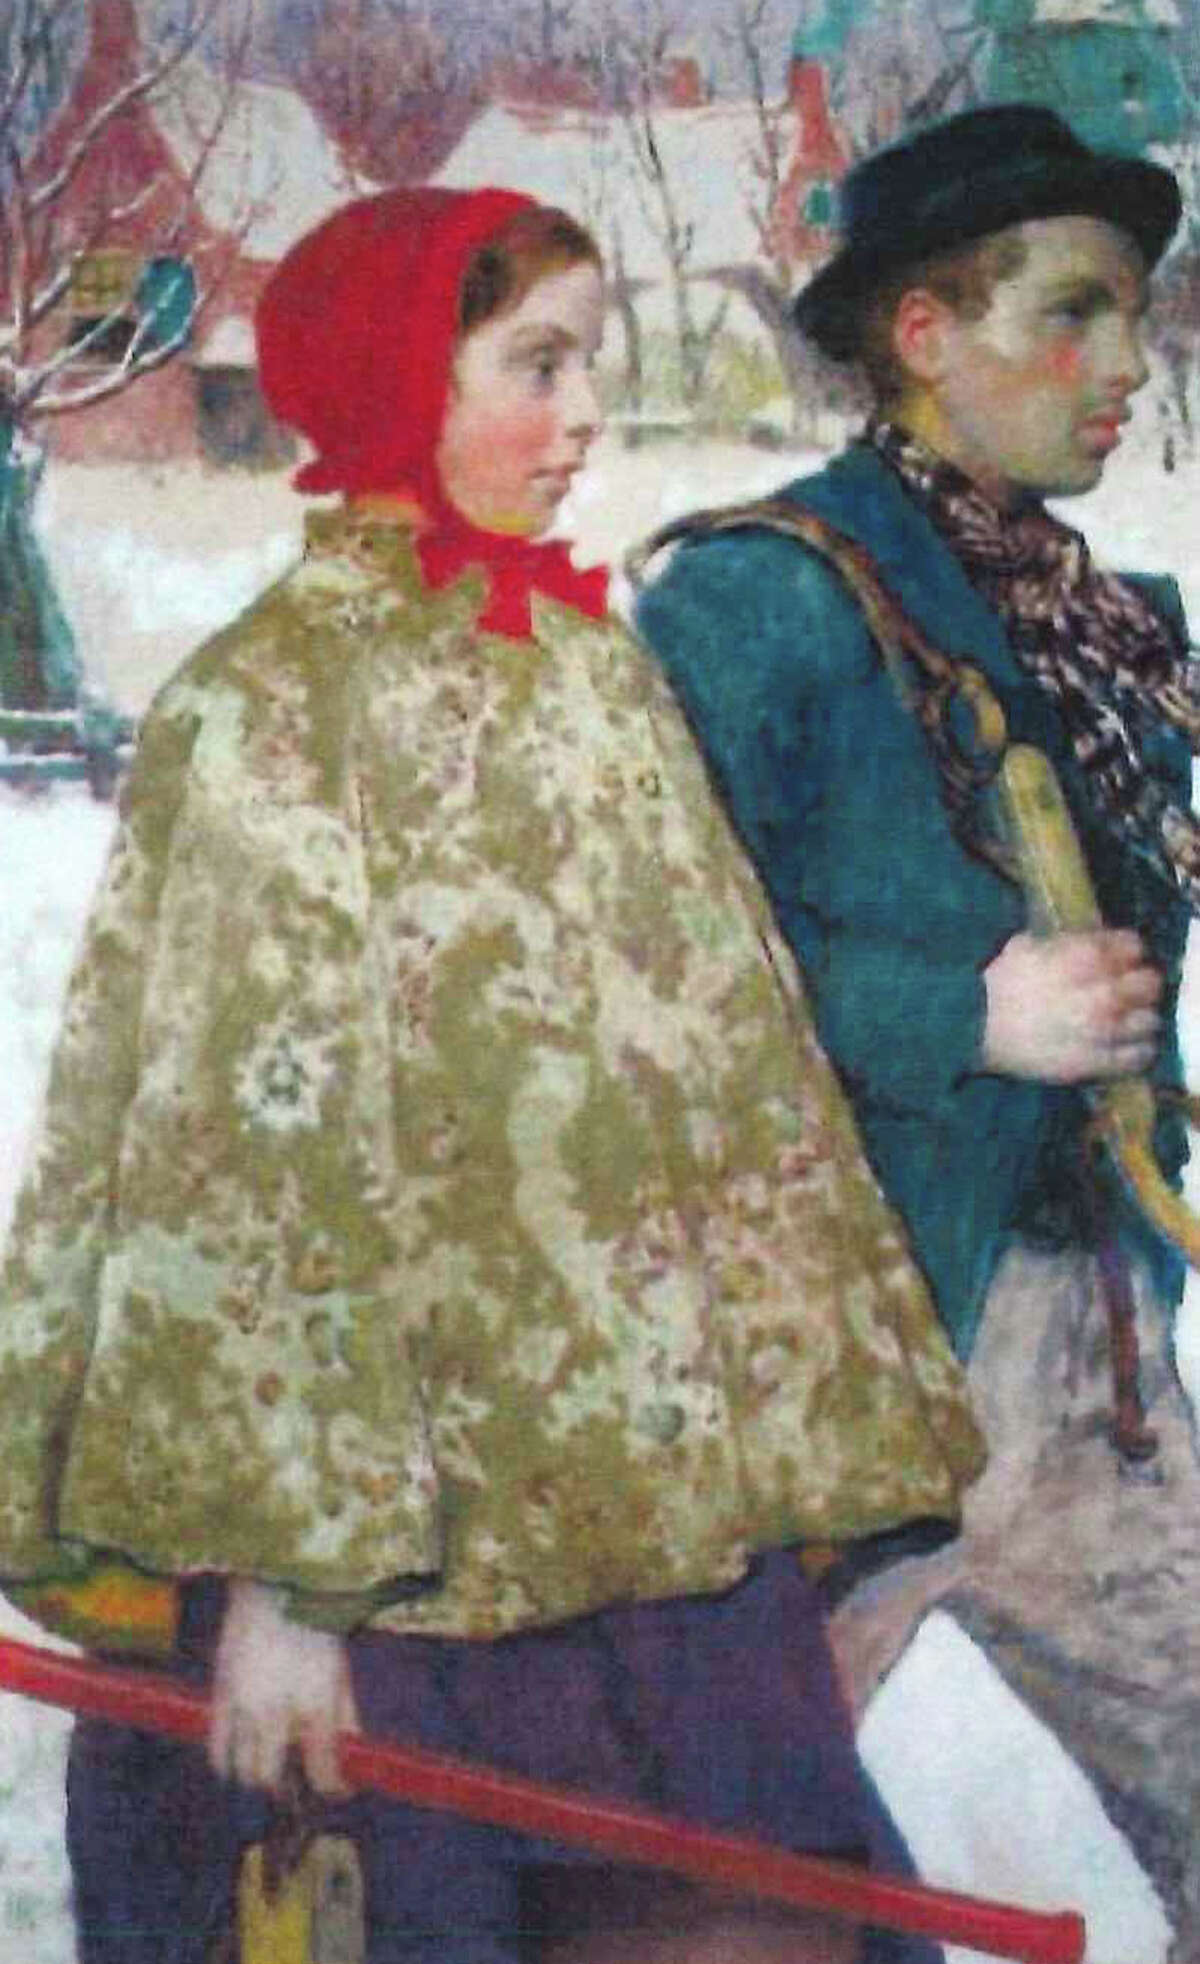 """""""Winter,"""" by artist Gari Melchers, was purchased from the Macbeth Art Gallery in New York City in 1934 by Bartlett Arkell, president of the Beechnut Packing Co. in Canajoharie and founder of the art museum there. The FBI recently seized a painting from an art museum in Canajoharie, part of an international effort to recover artwork stolen by the Nazis from the heirs of jewish publisher Rudolf Mosse, a philanthropist who died in 1920. (U.S. Government exhibit)"""